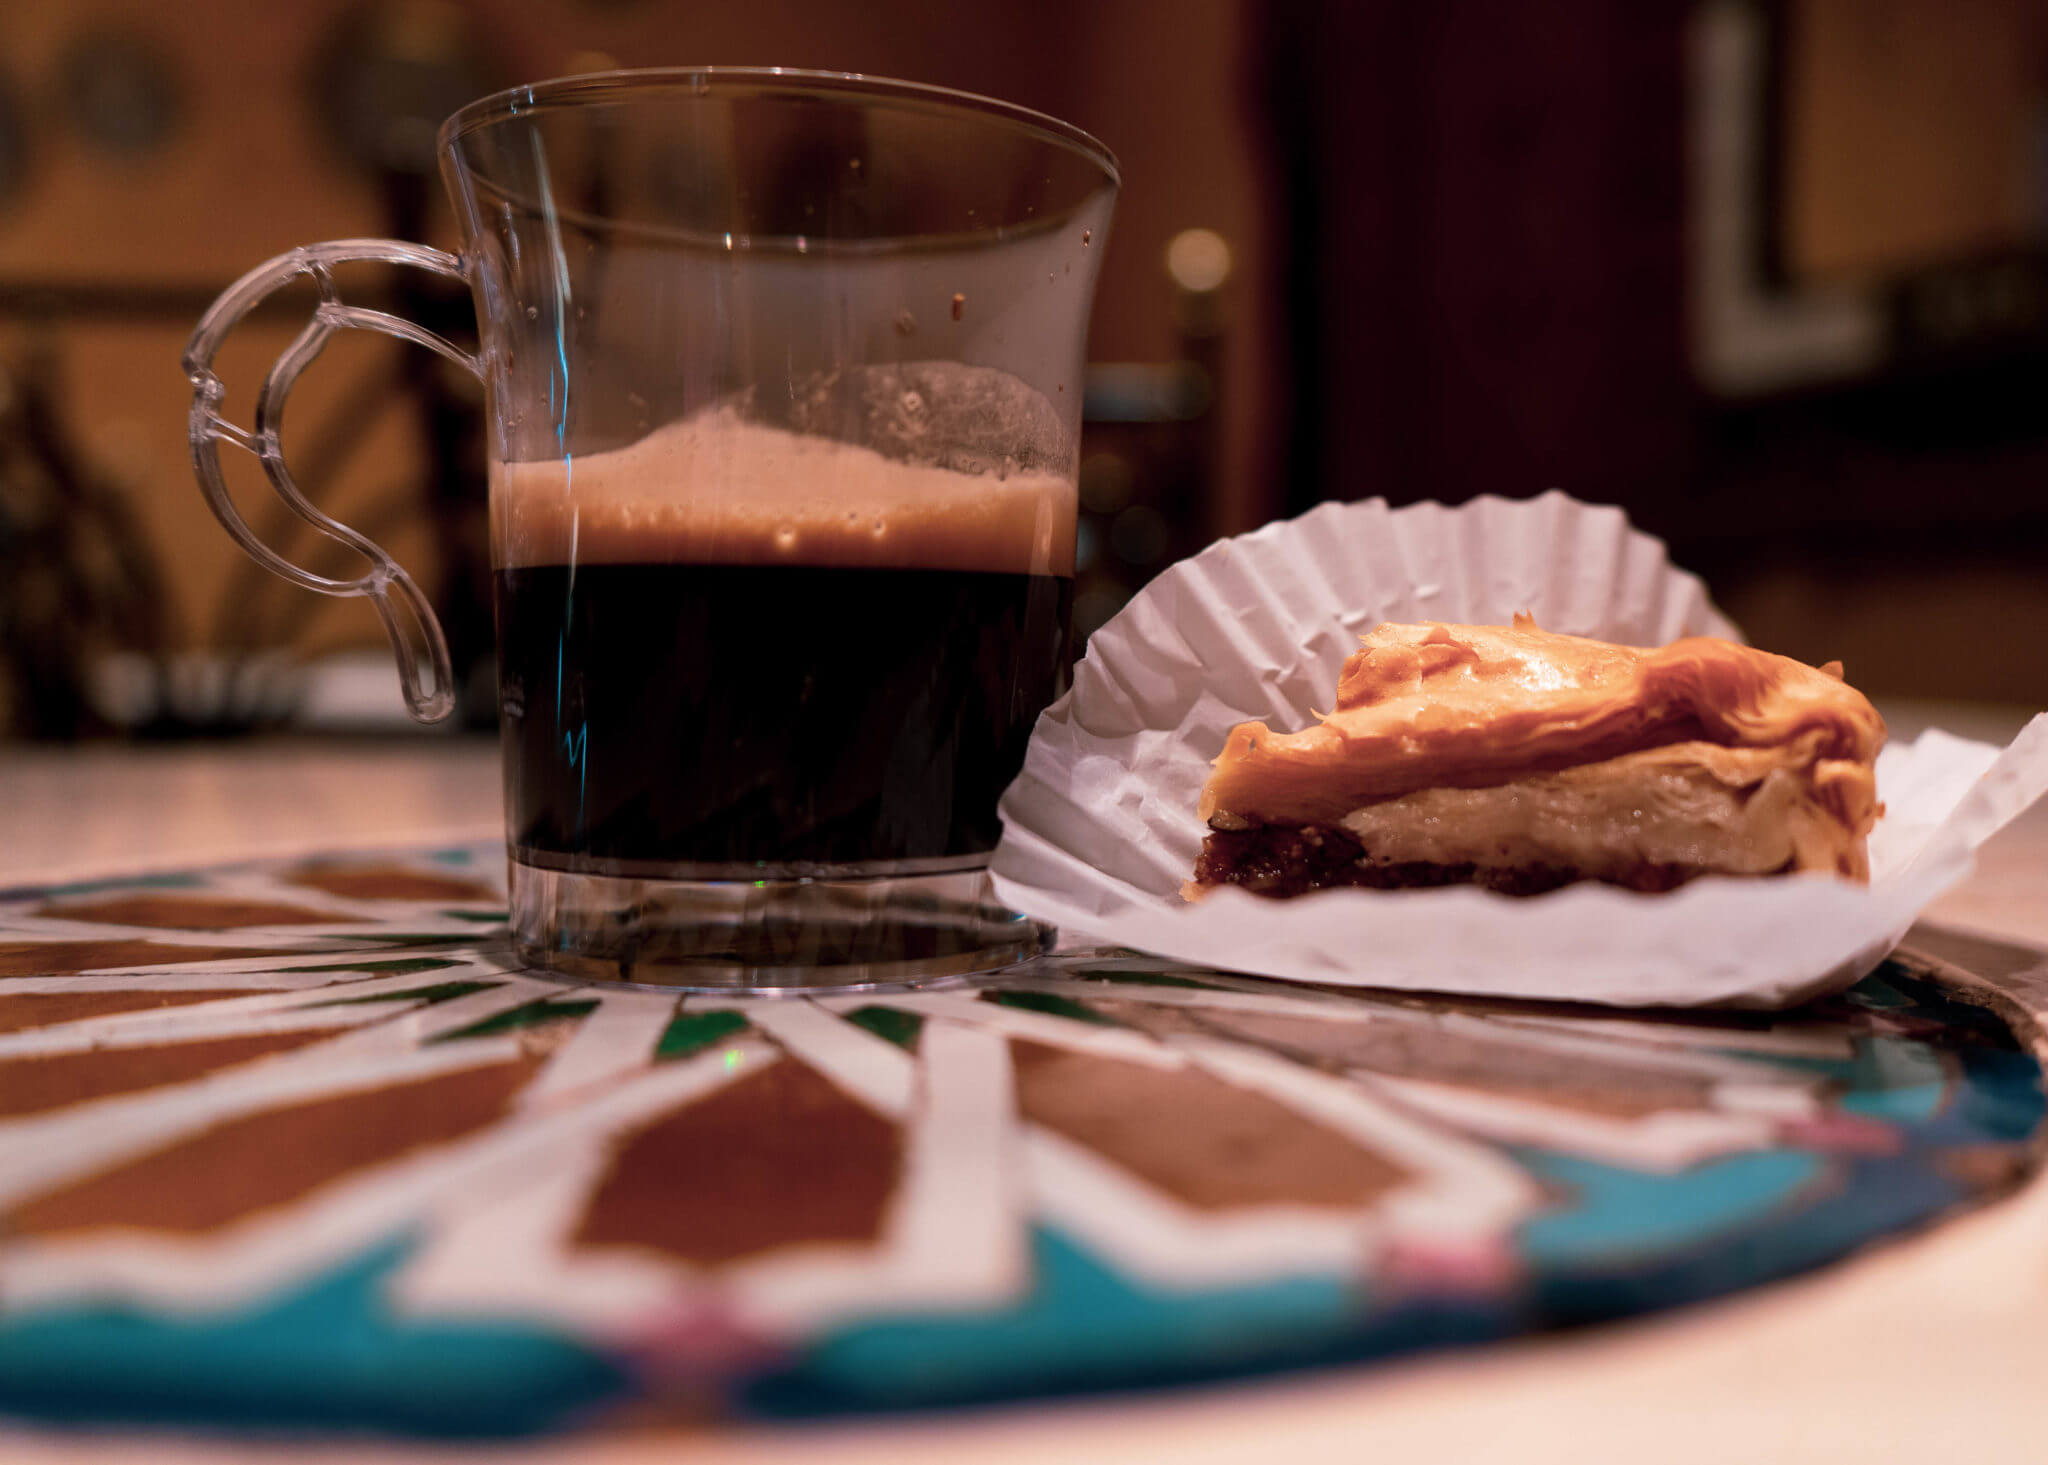 Tangierine Coffee and Baklava from Morocco pavilion in Disney World's Epcot